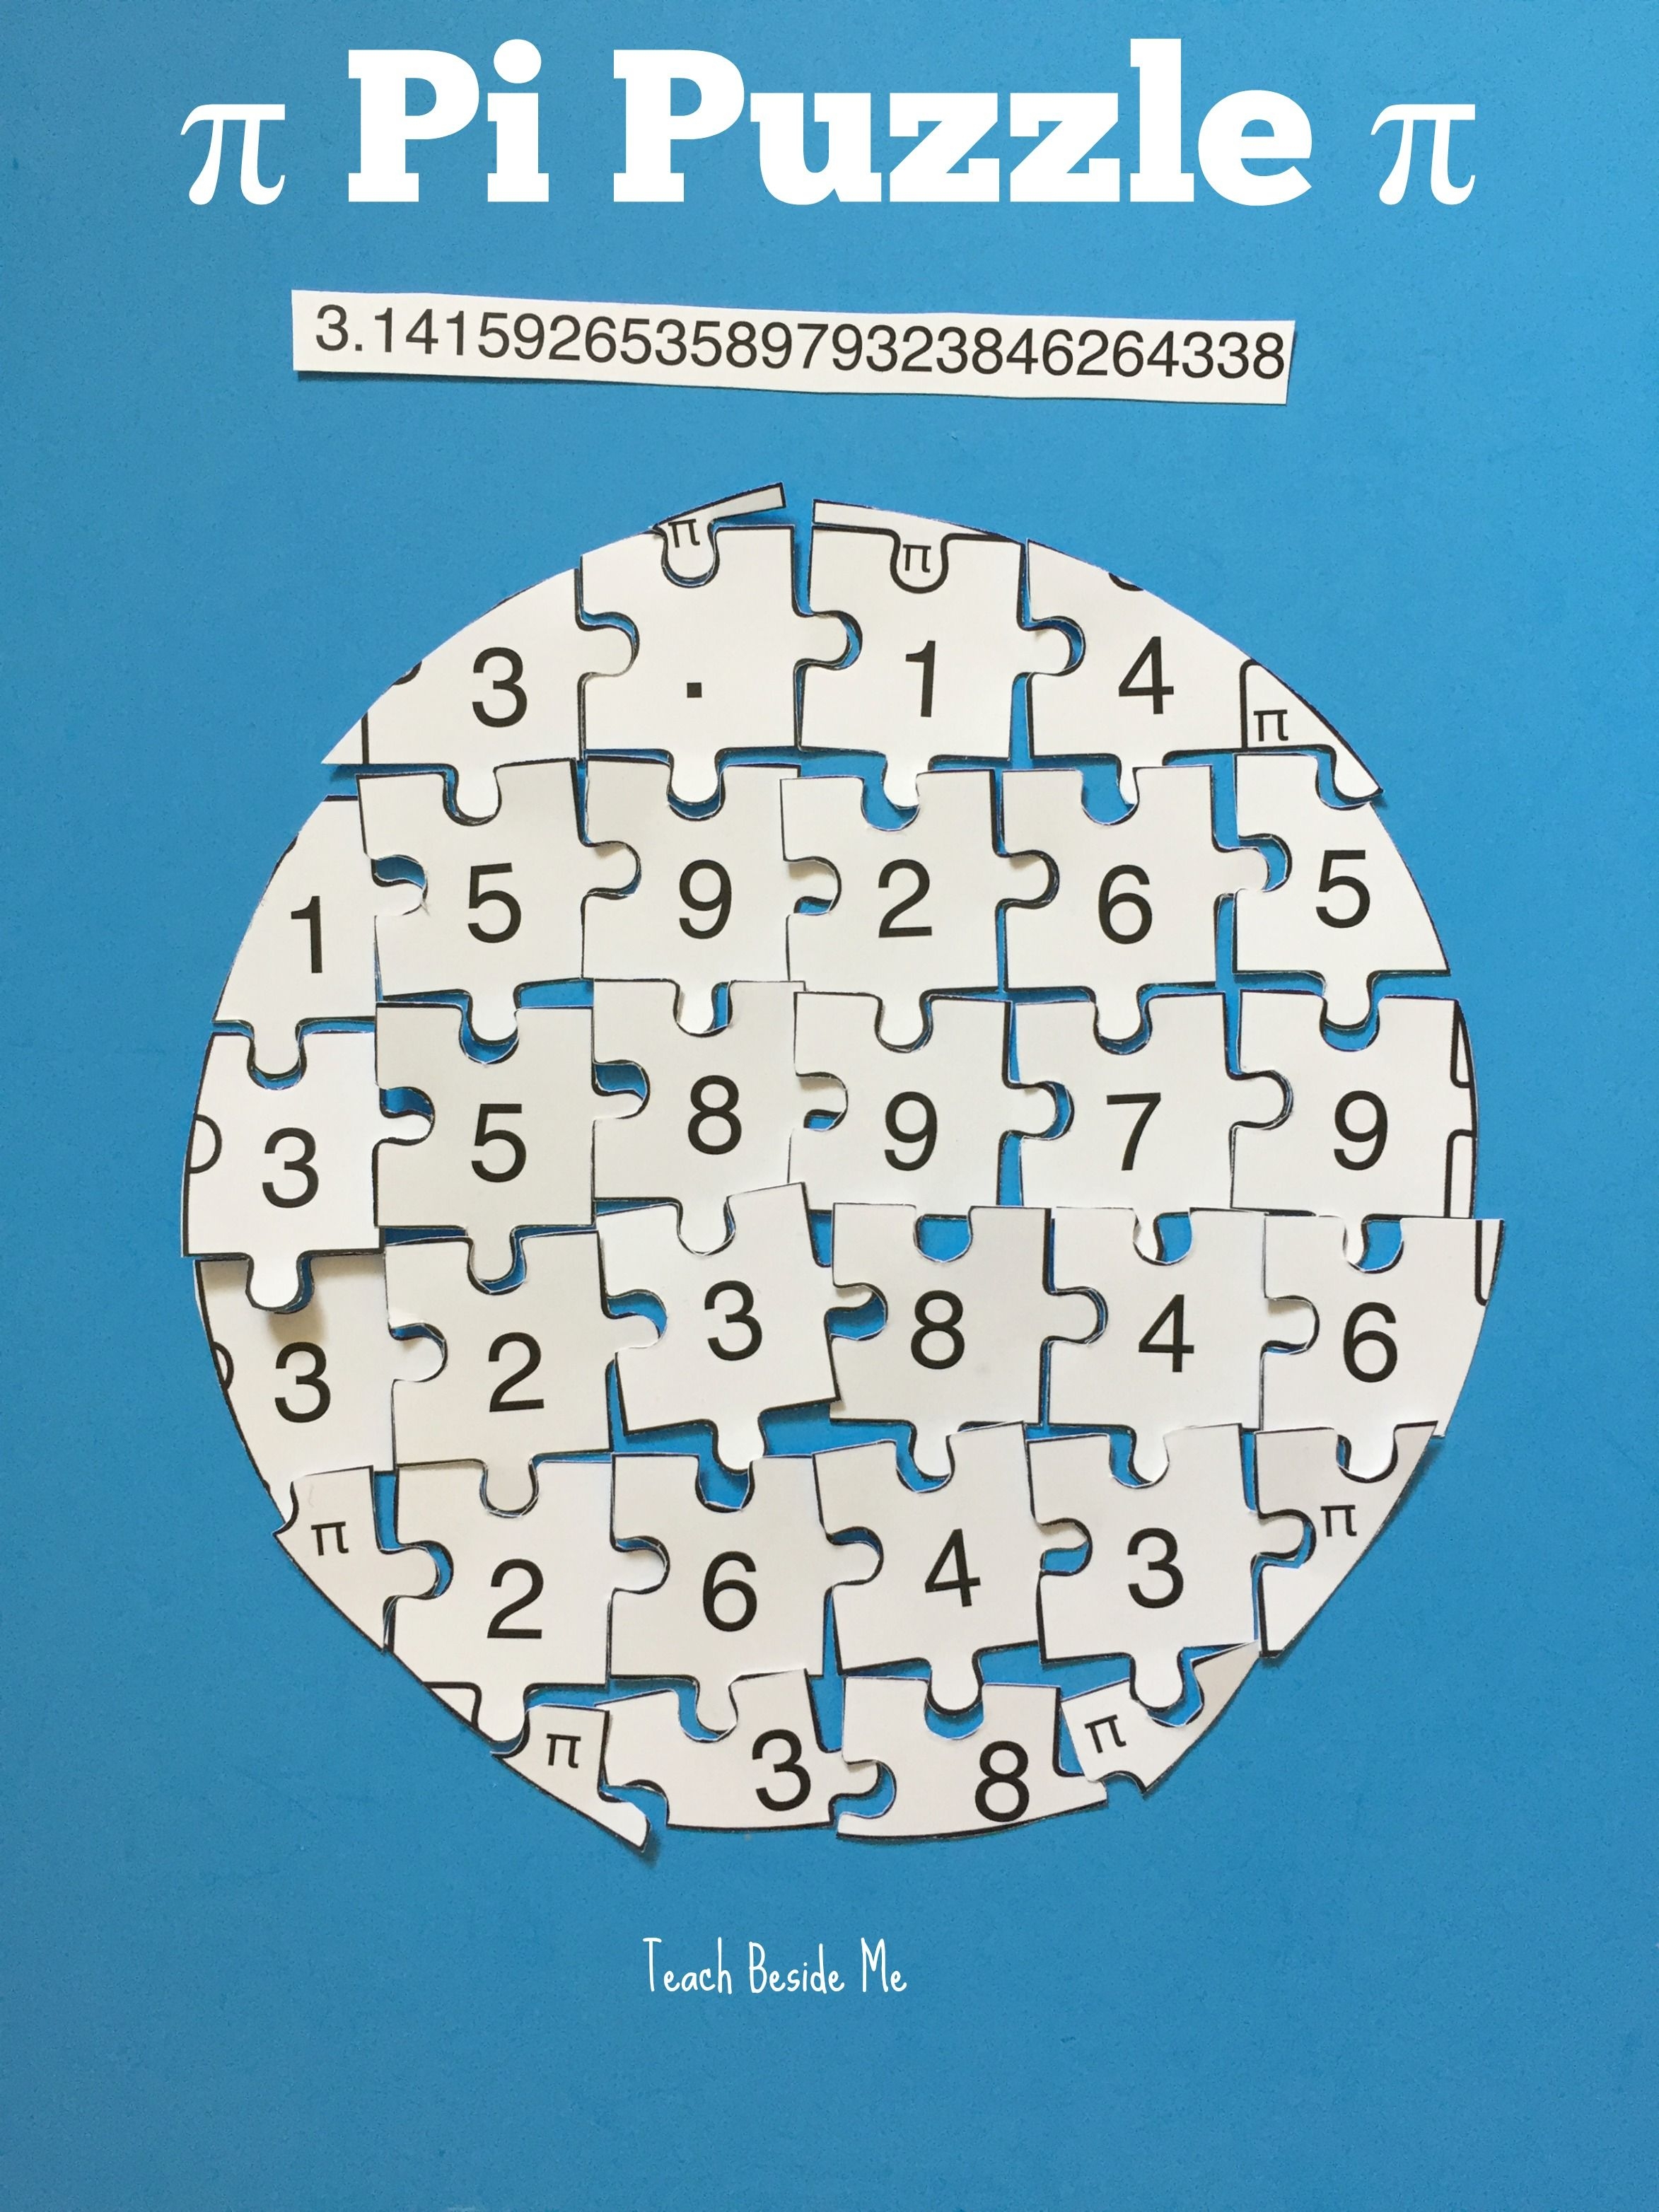 Printable Pi Puzzle For Pi Day | Teach Beside Me | Teaching Math - Printable Puzzle Of The Day